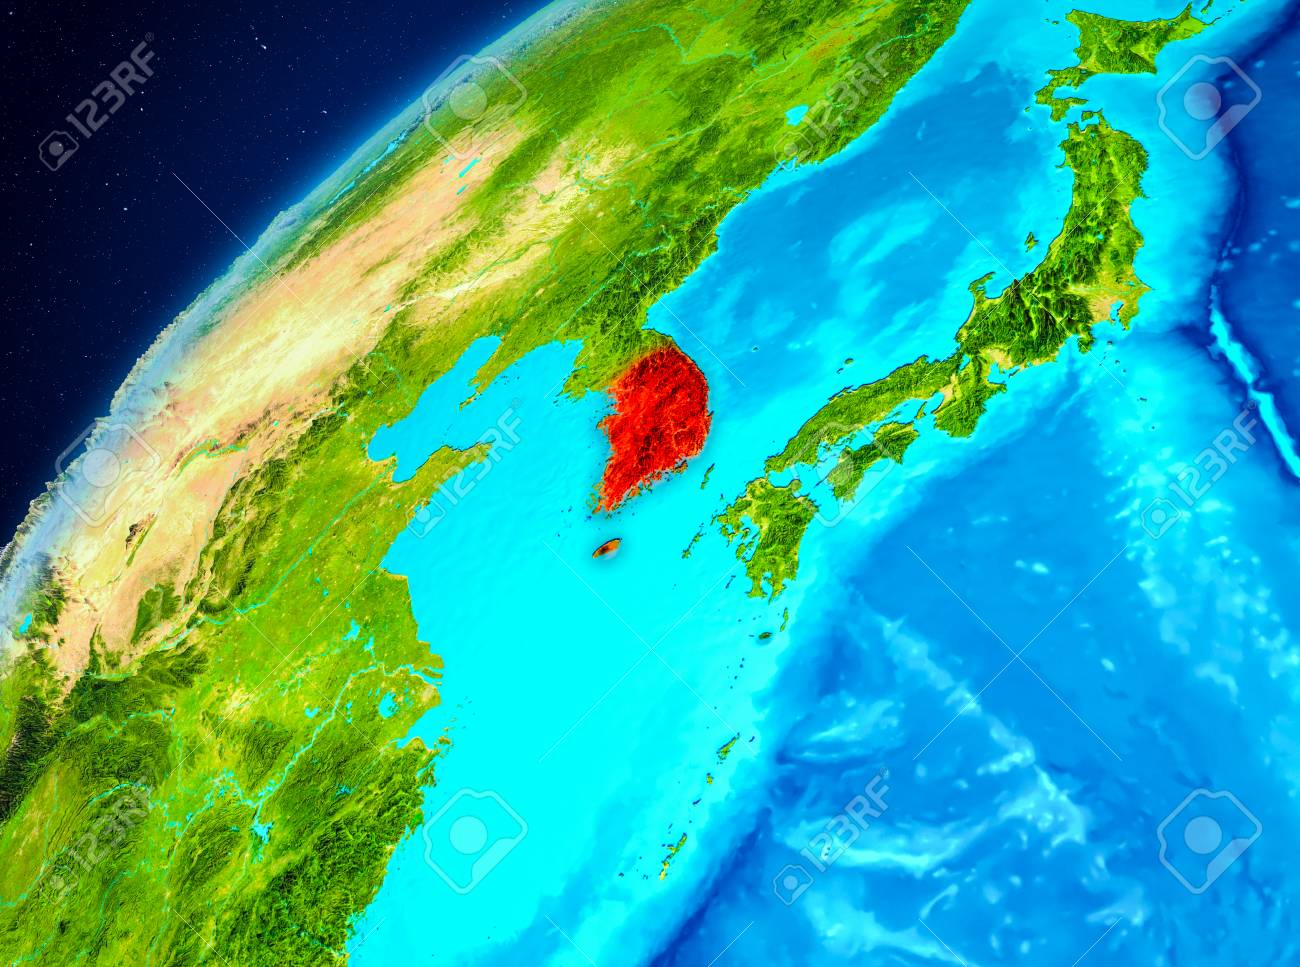 Orbit view of south korea highlighted in red on planet earth illustration orbit view of south korea highlighted in red on planet earth 3d illustration gumiabroncs Choice Image